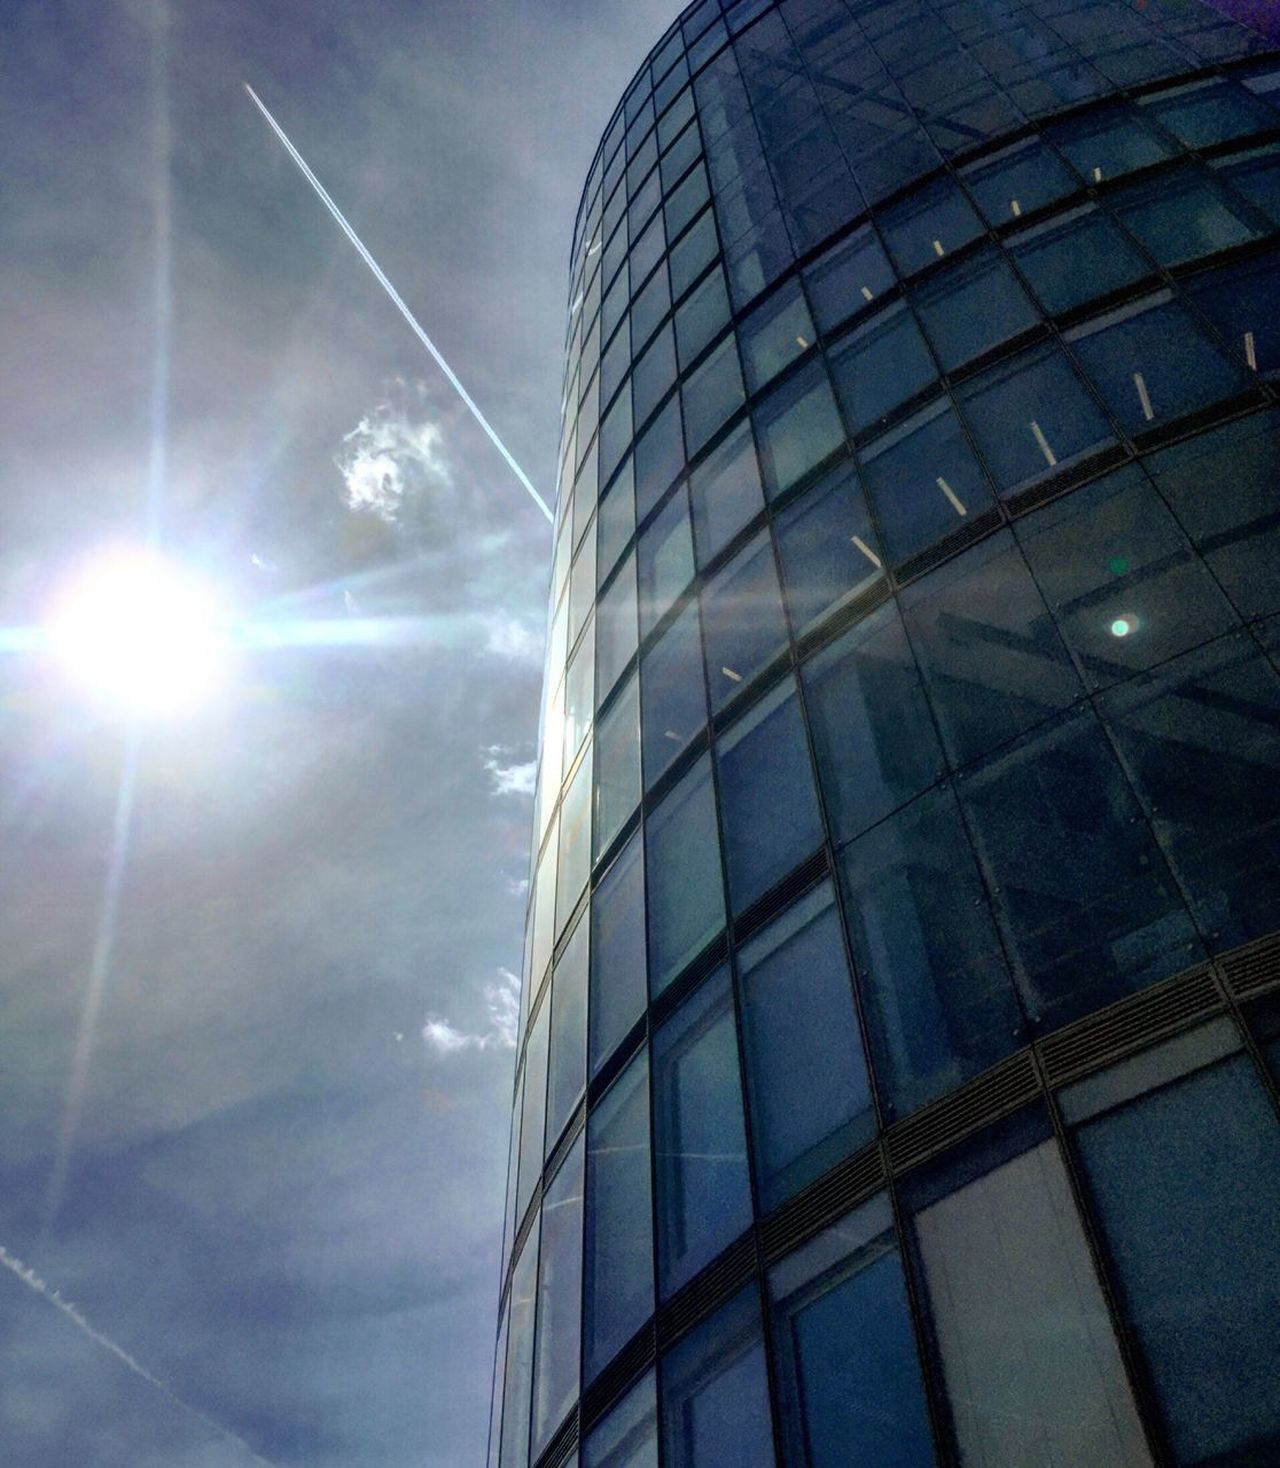 Sunny business Sky Architecture Low Angle View Built Structure Building Exterior Sunlight No People Day Outdoors Reflection Cloud - Sky Modern Window Nature City Water Tower - Storage Tank